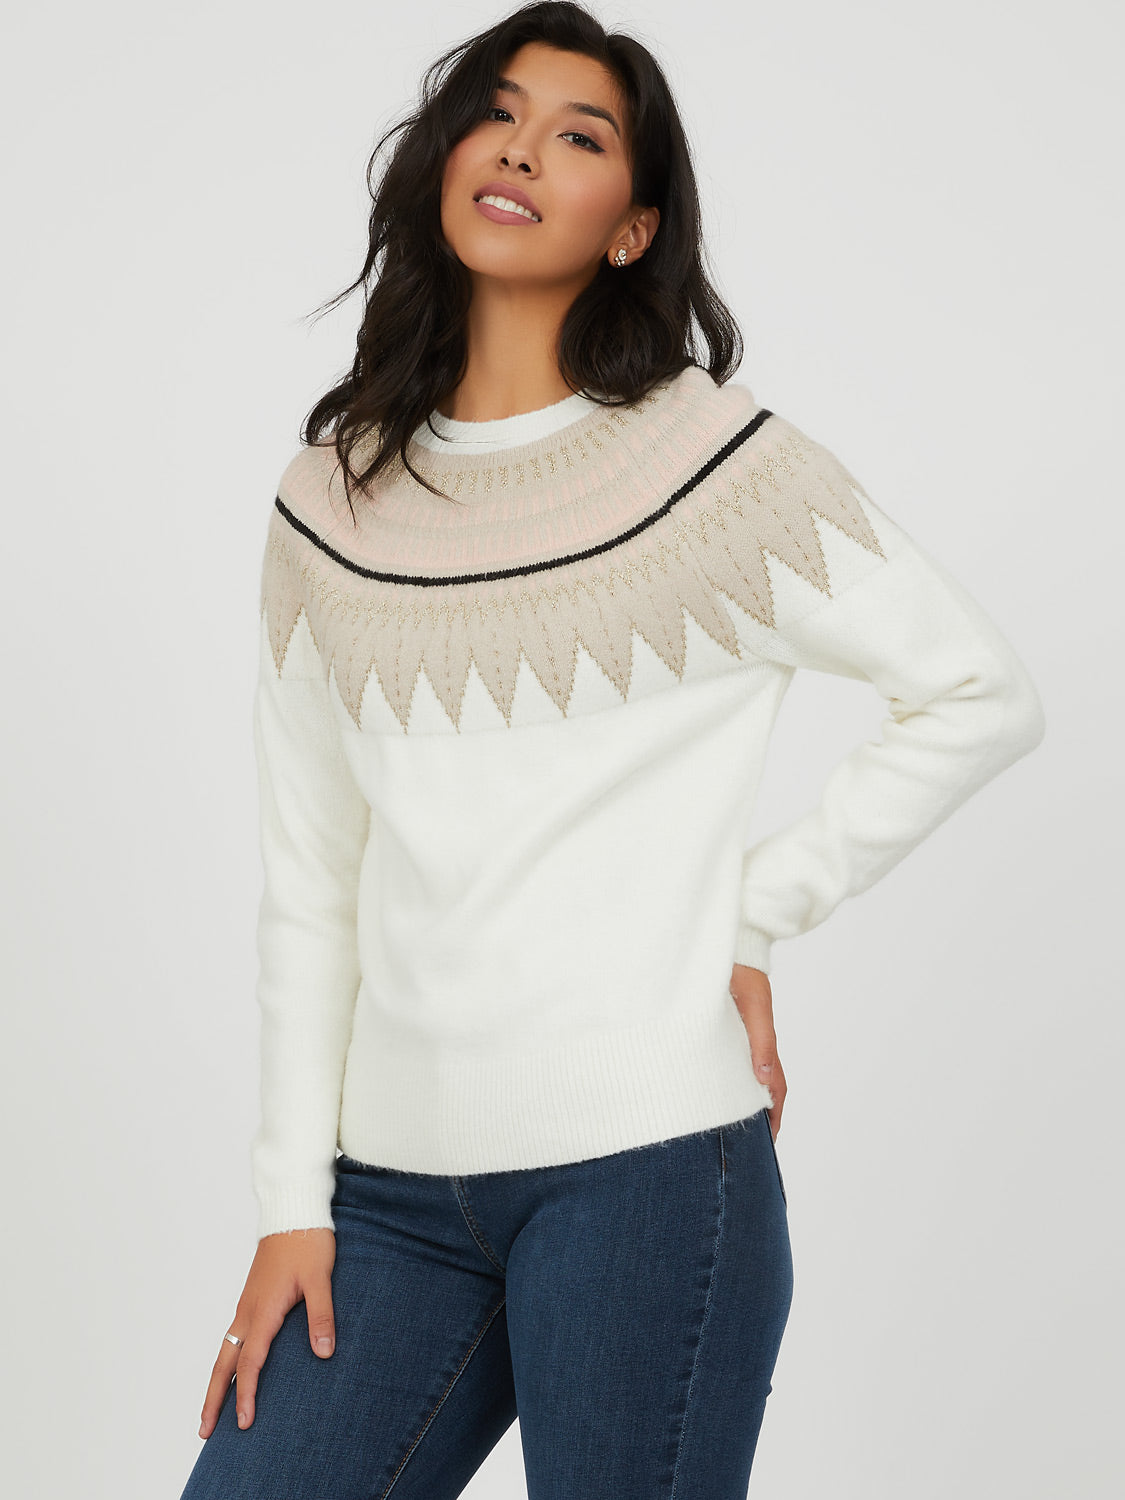 Fair Isle Metallic Knit Sweater